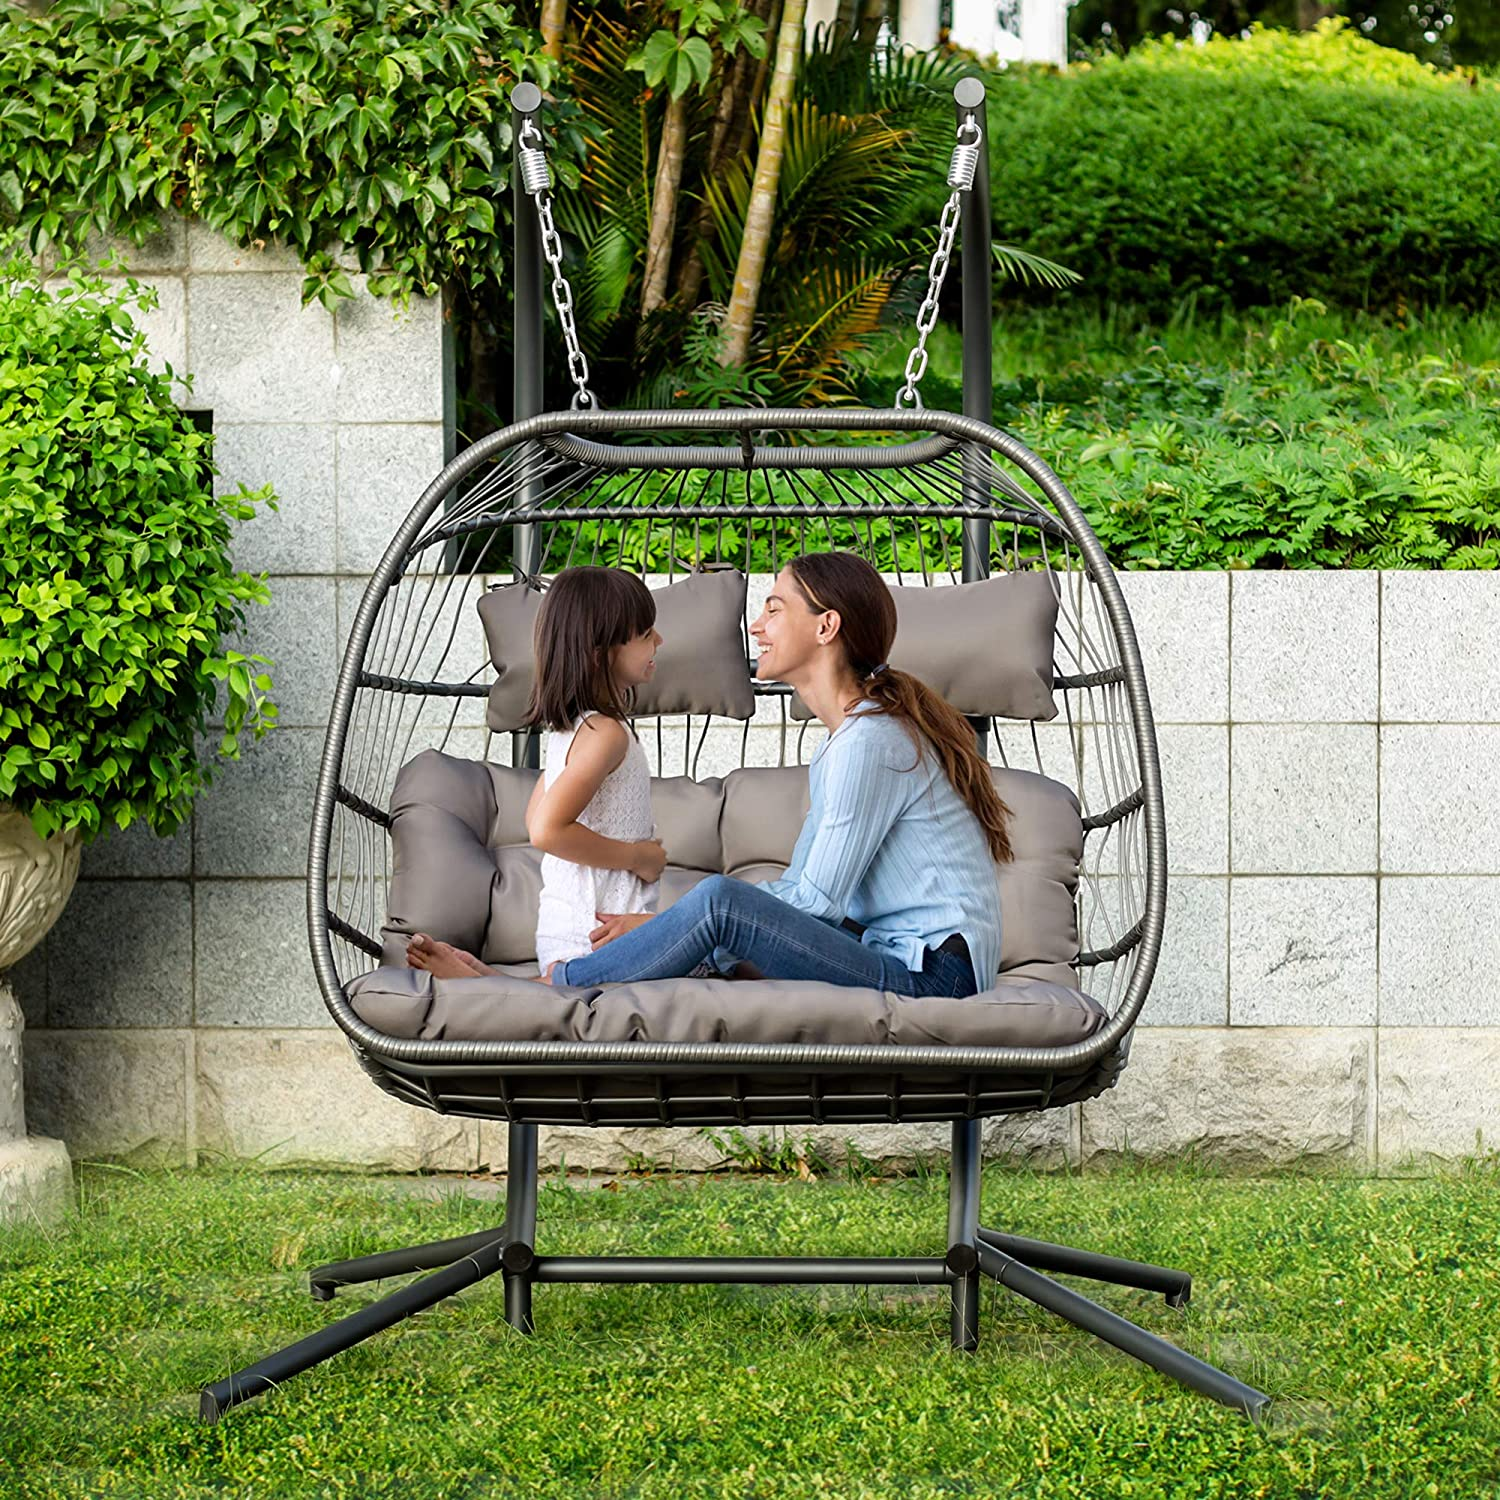 Amazon Com Brafab 2 Person Double Swing Chair Hanging Egg Chair Rattan Wicker Hammock With Stand And Cushion Aluminum Frame Grey Cushion Kitchen Dining